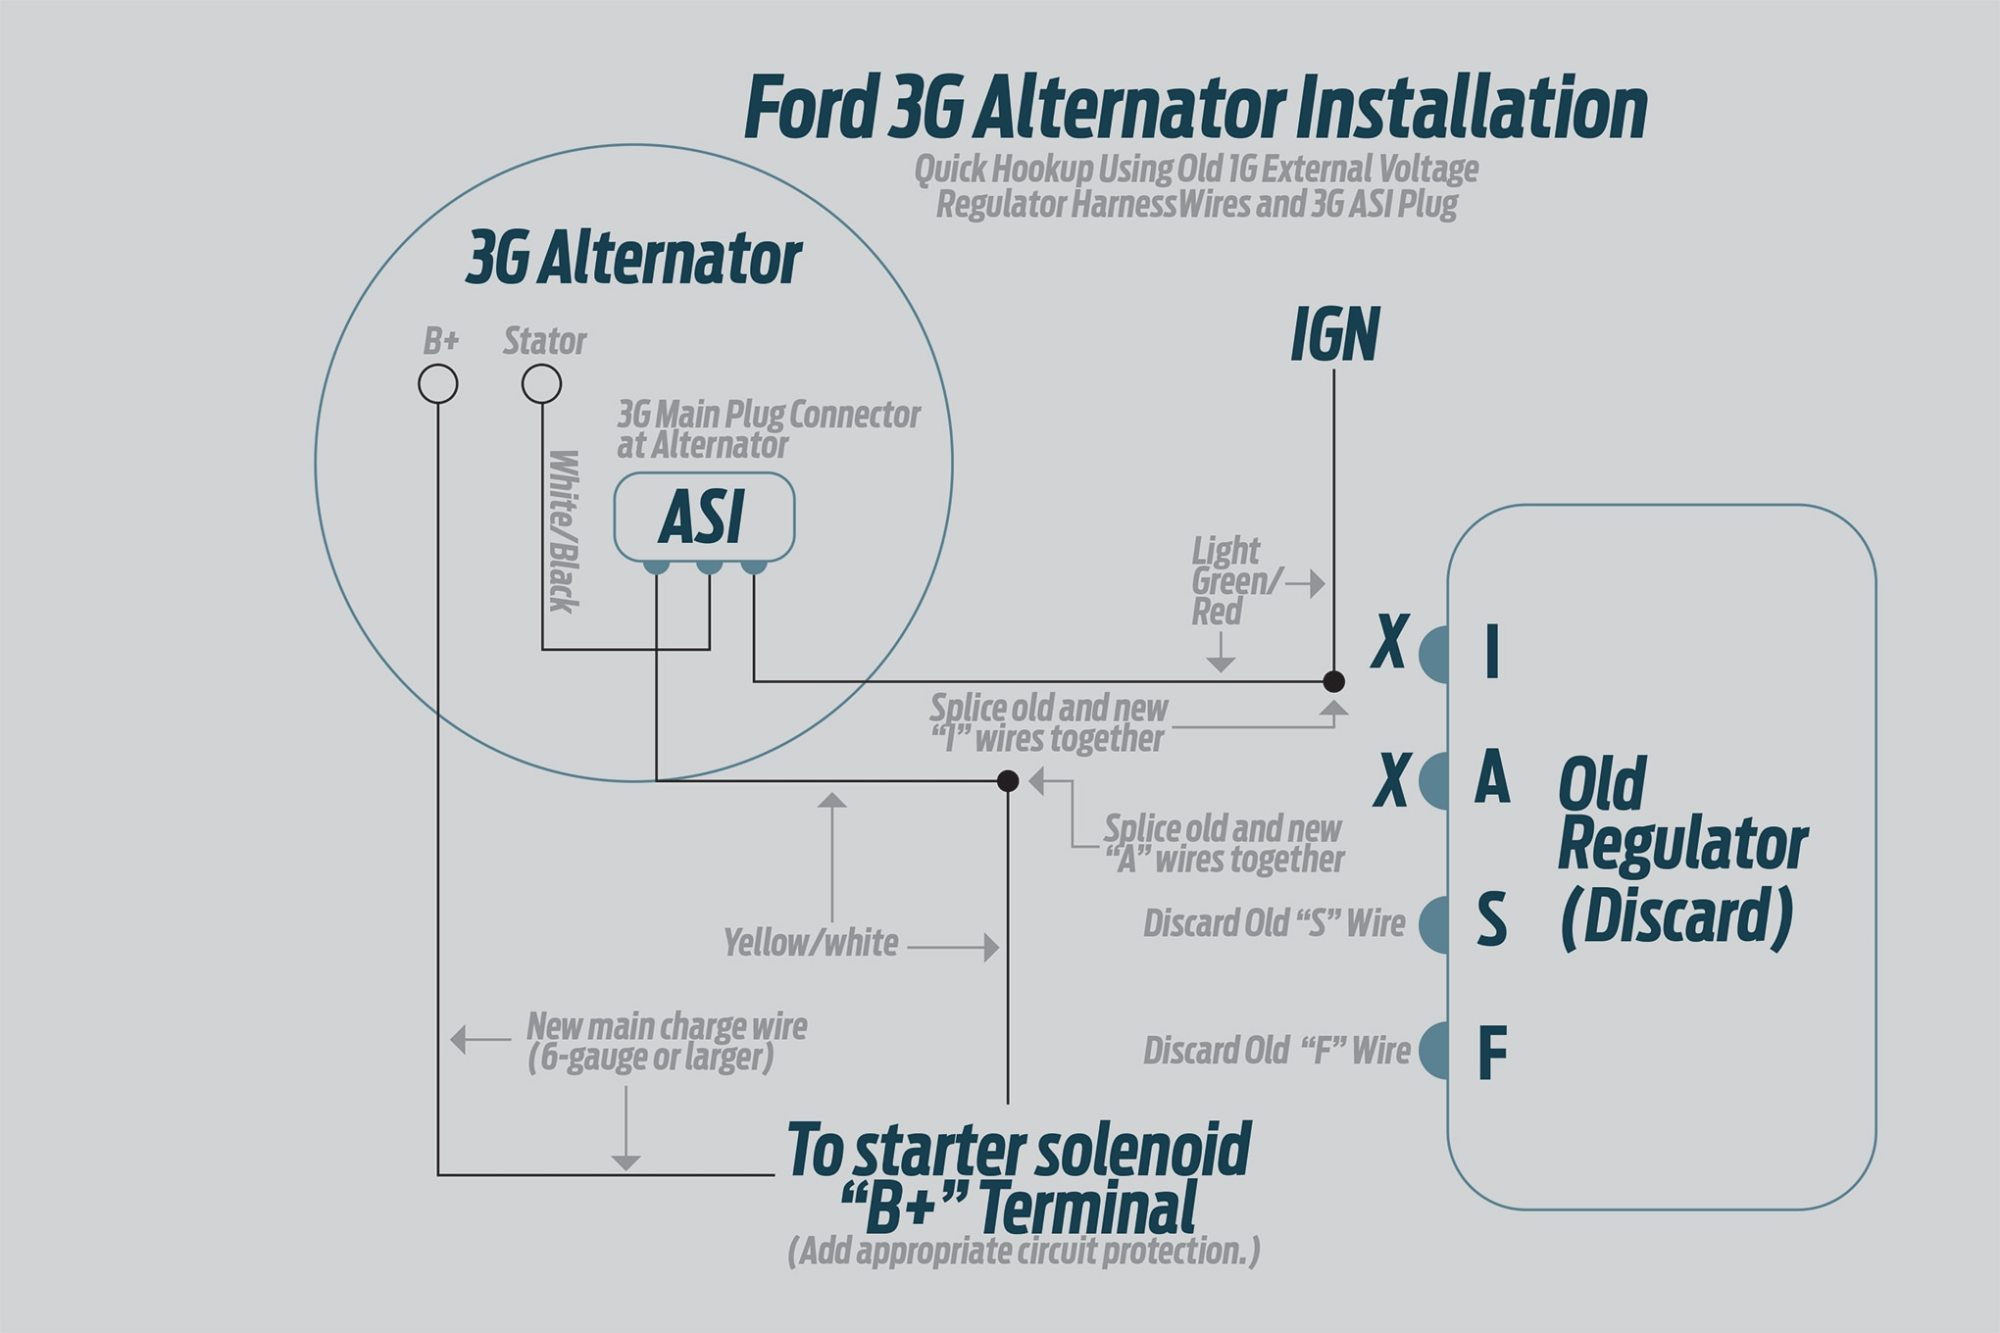 hight resolution of how to install a high output ford 3g alternator into older fords ford 3g alternator 1 wire conversion ford 3g alternator wiring